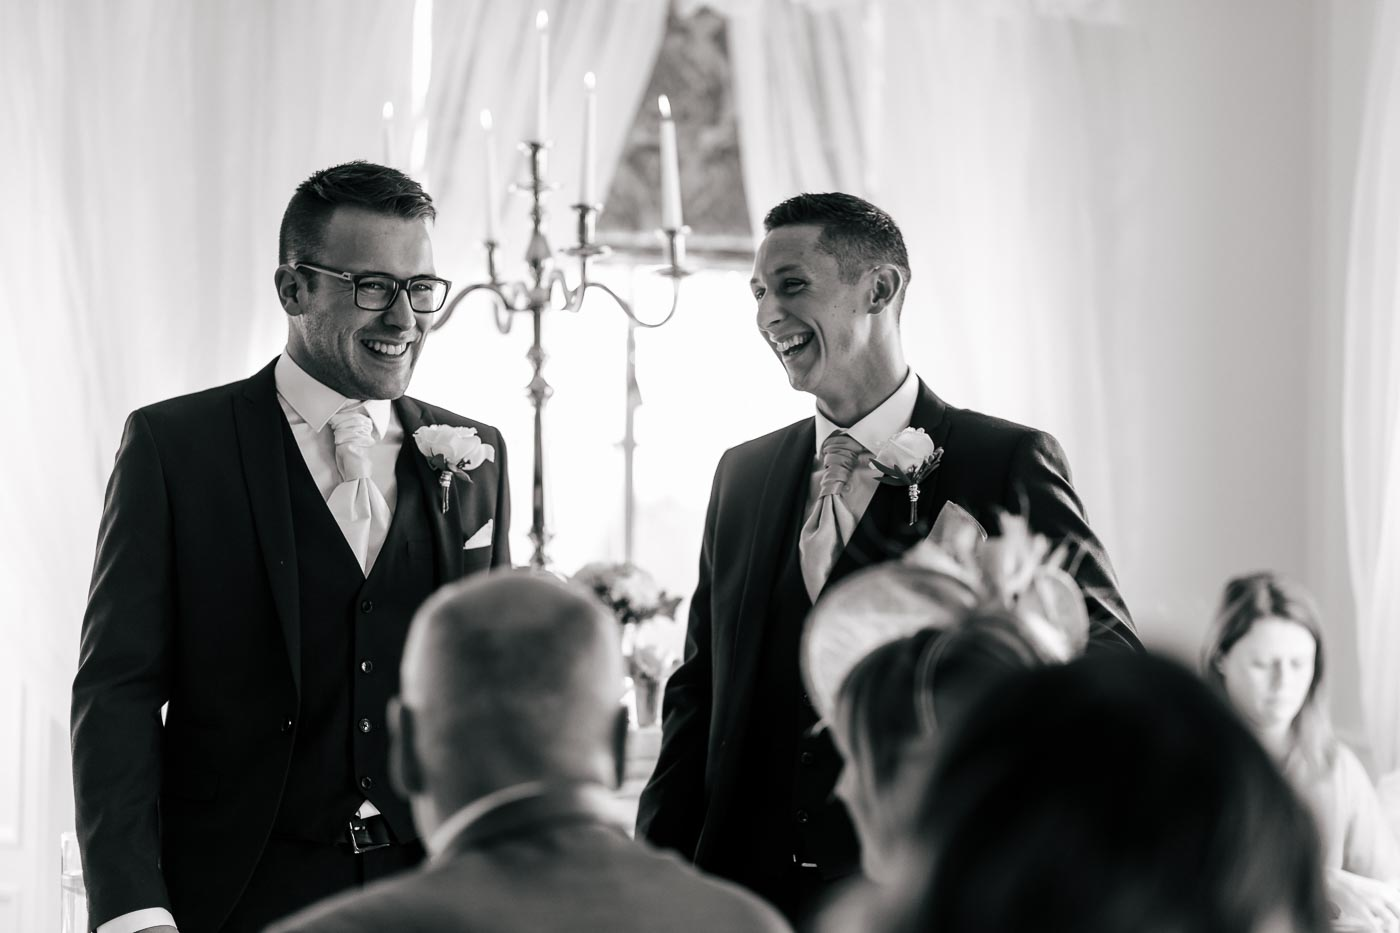 groomsman and groom laughing before the ceremony